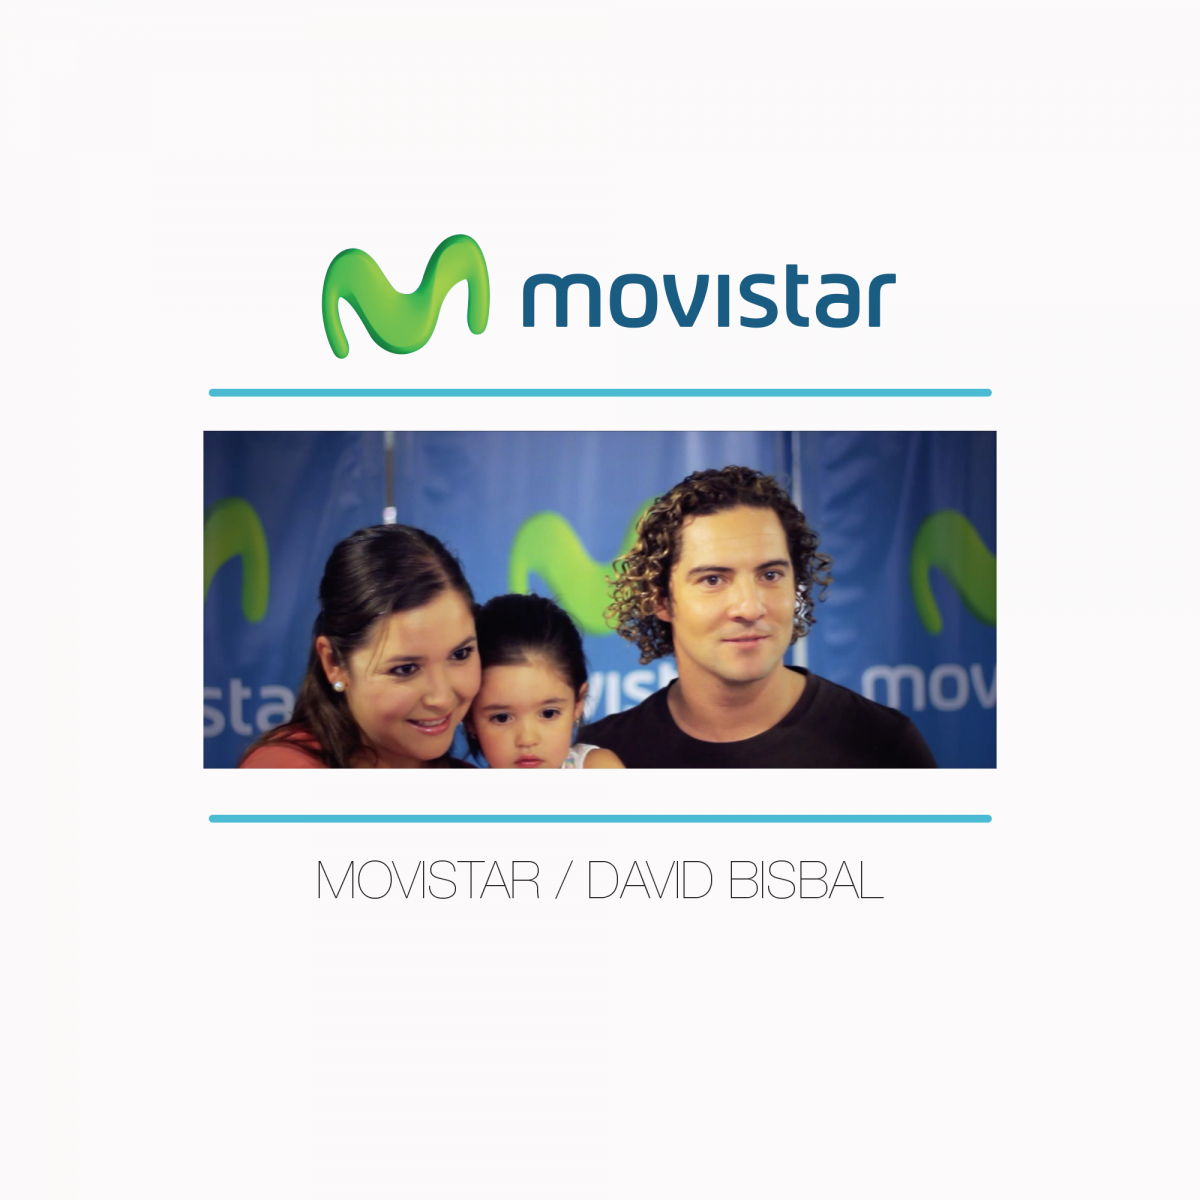 Movistar David Bisbal